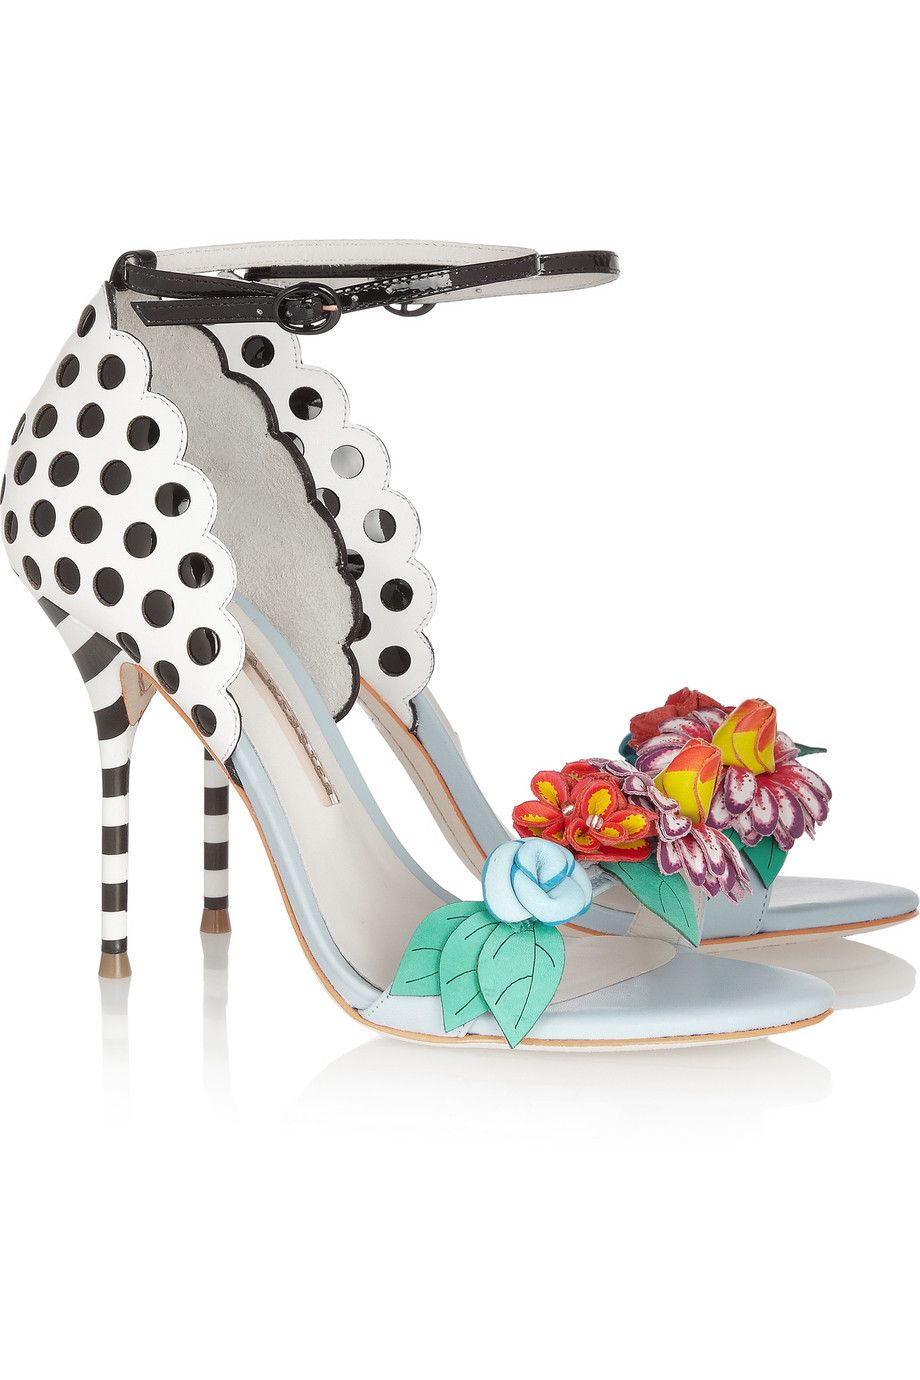 SOPHIA WEBSTER Embellished sandals n5mymC3i